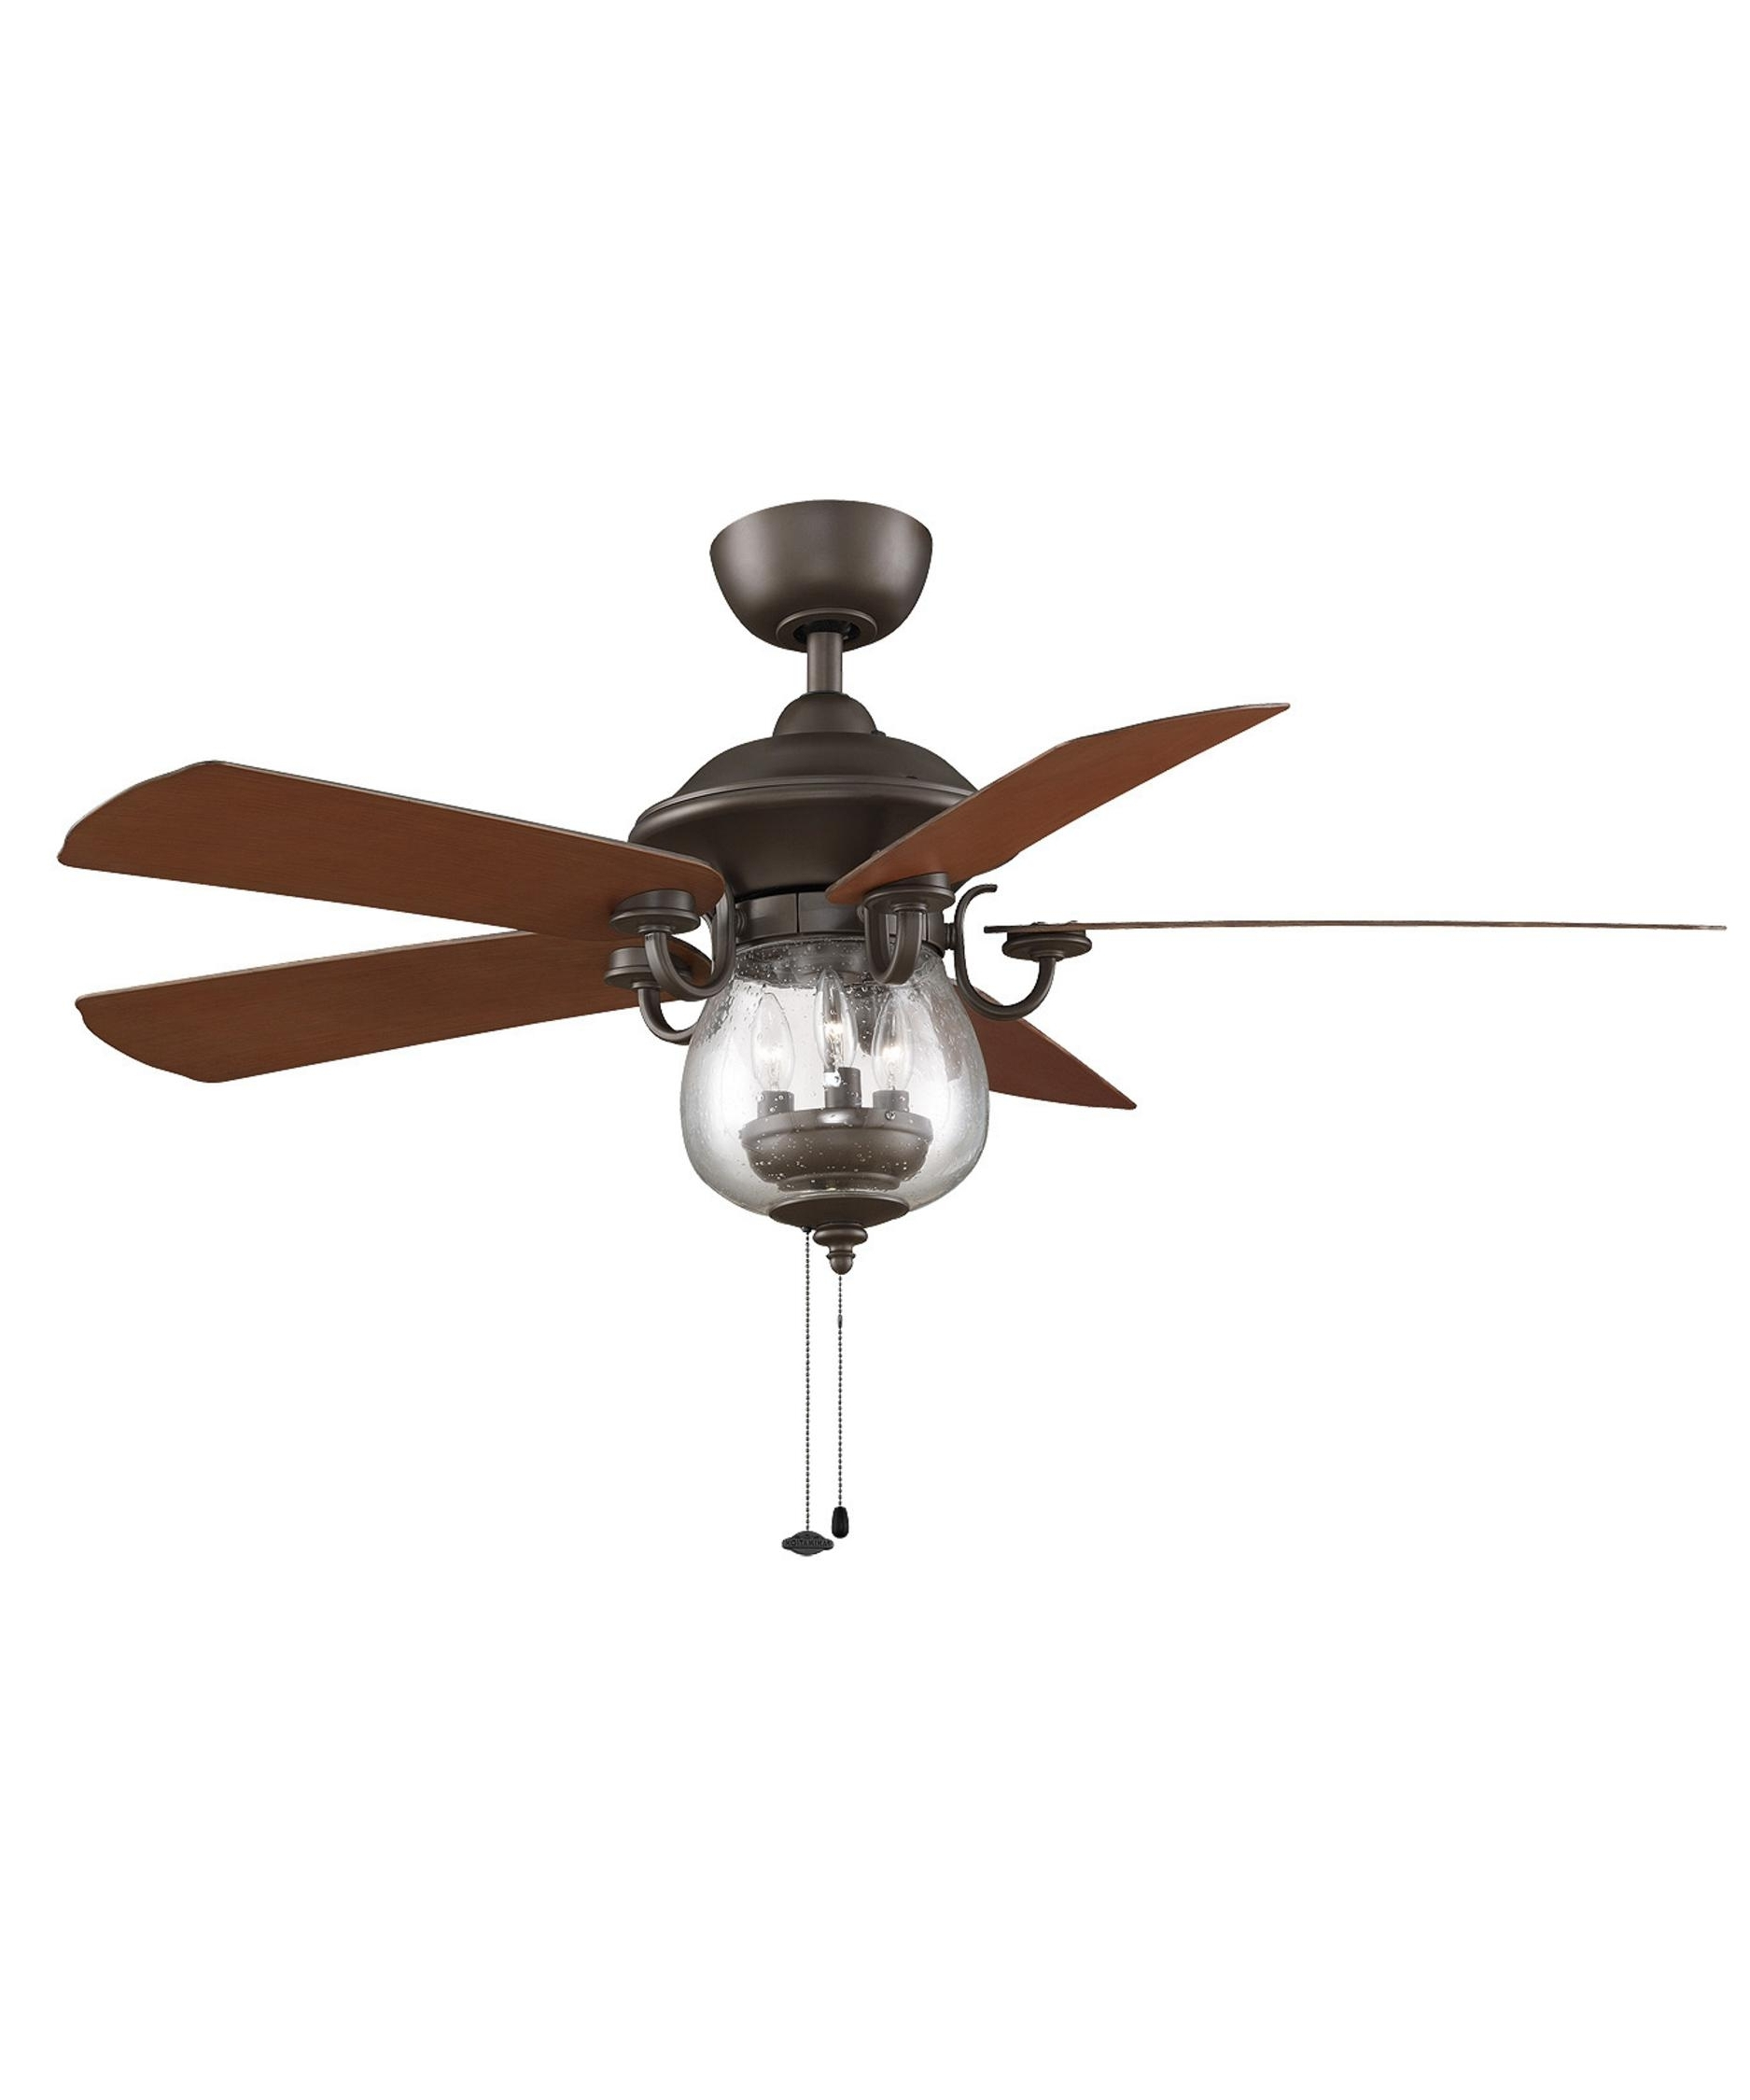 Sevenstonesinc Pertaining To Outdoor Ceiling Fans And Lights (View 17 of 20)